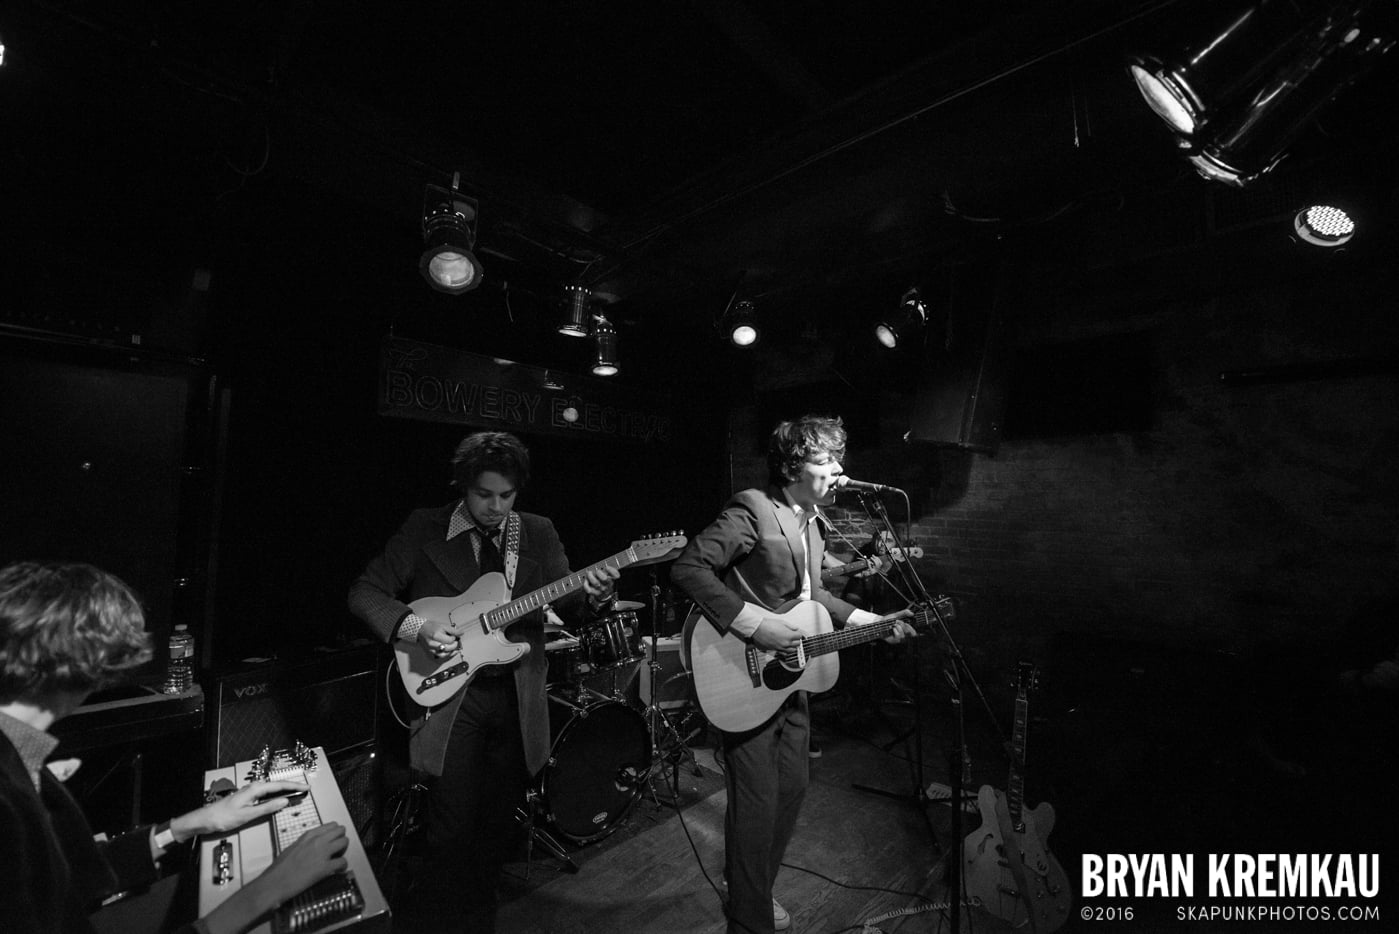 Trapper Schoepp & The Shades @ Bowery Electric, NYC - 11.20.14 (47)